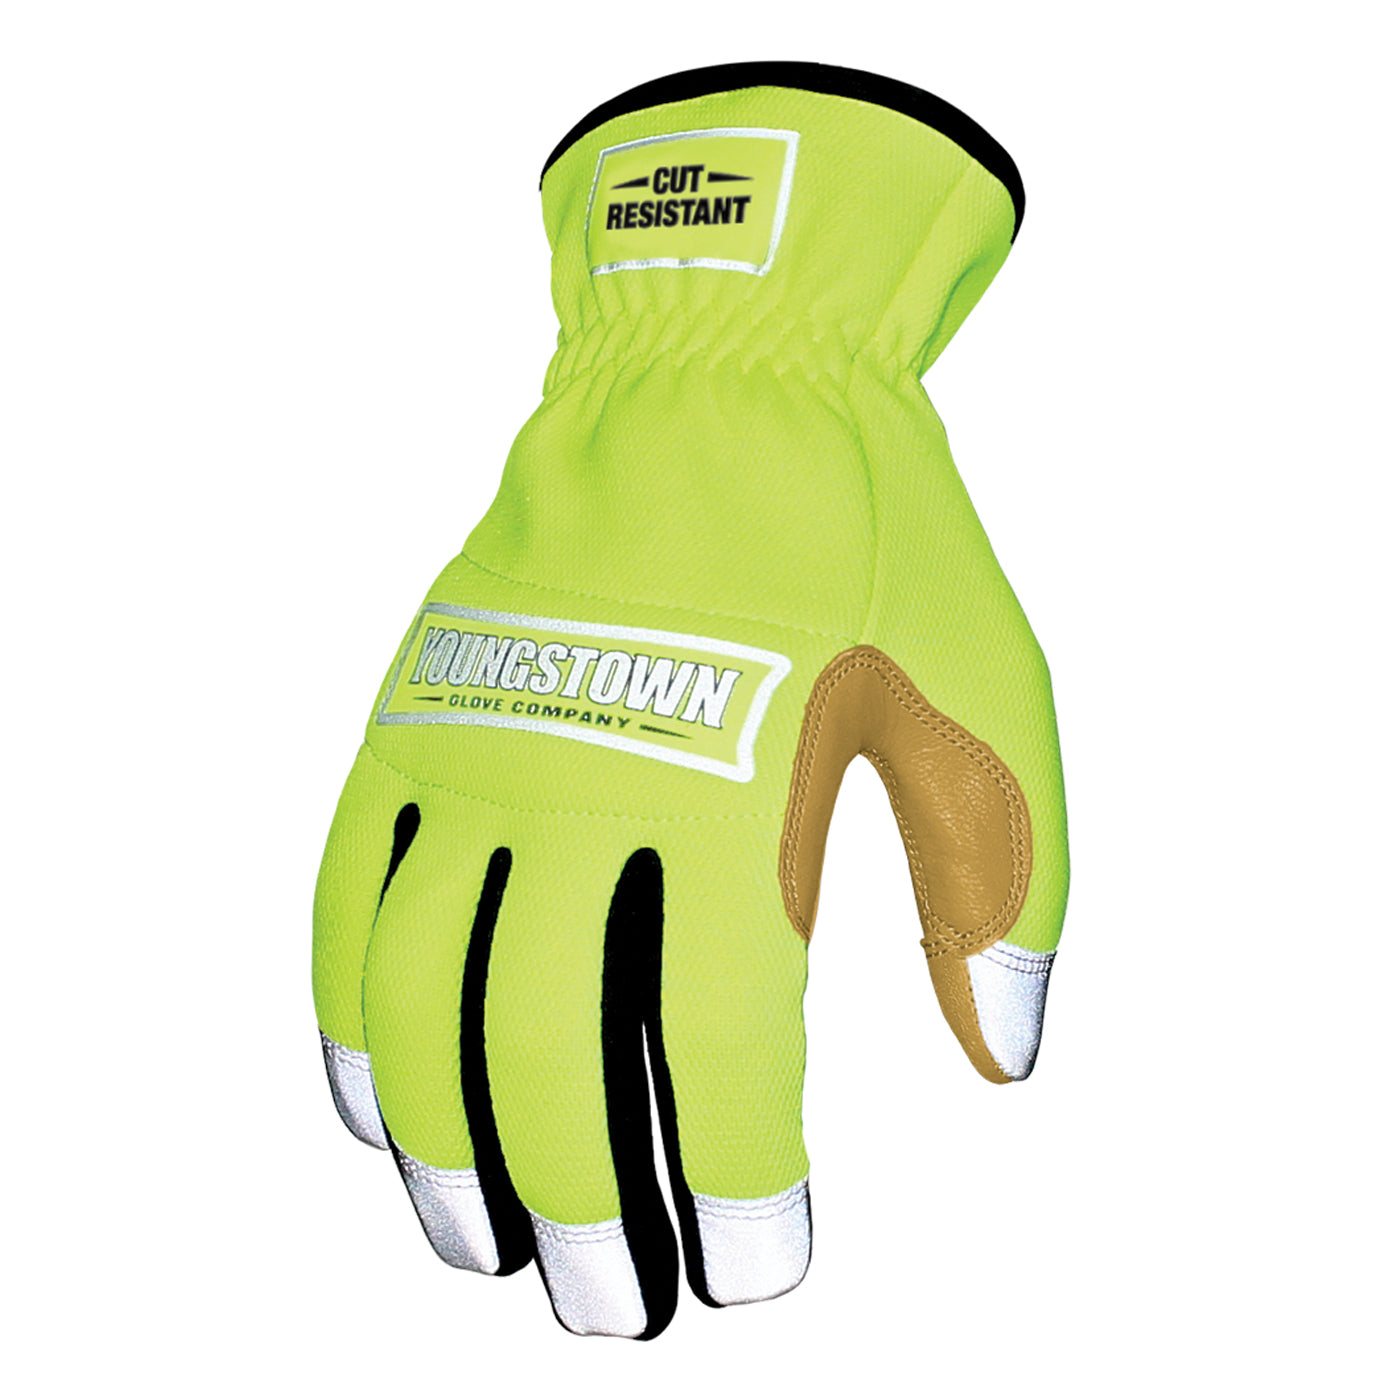 Cut Resistant Safety Lime Hybrid